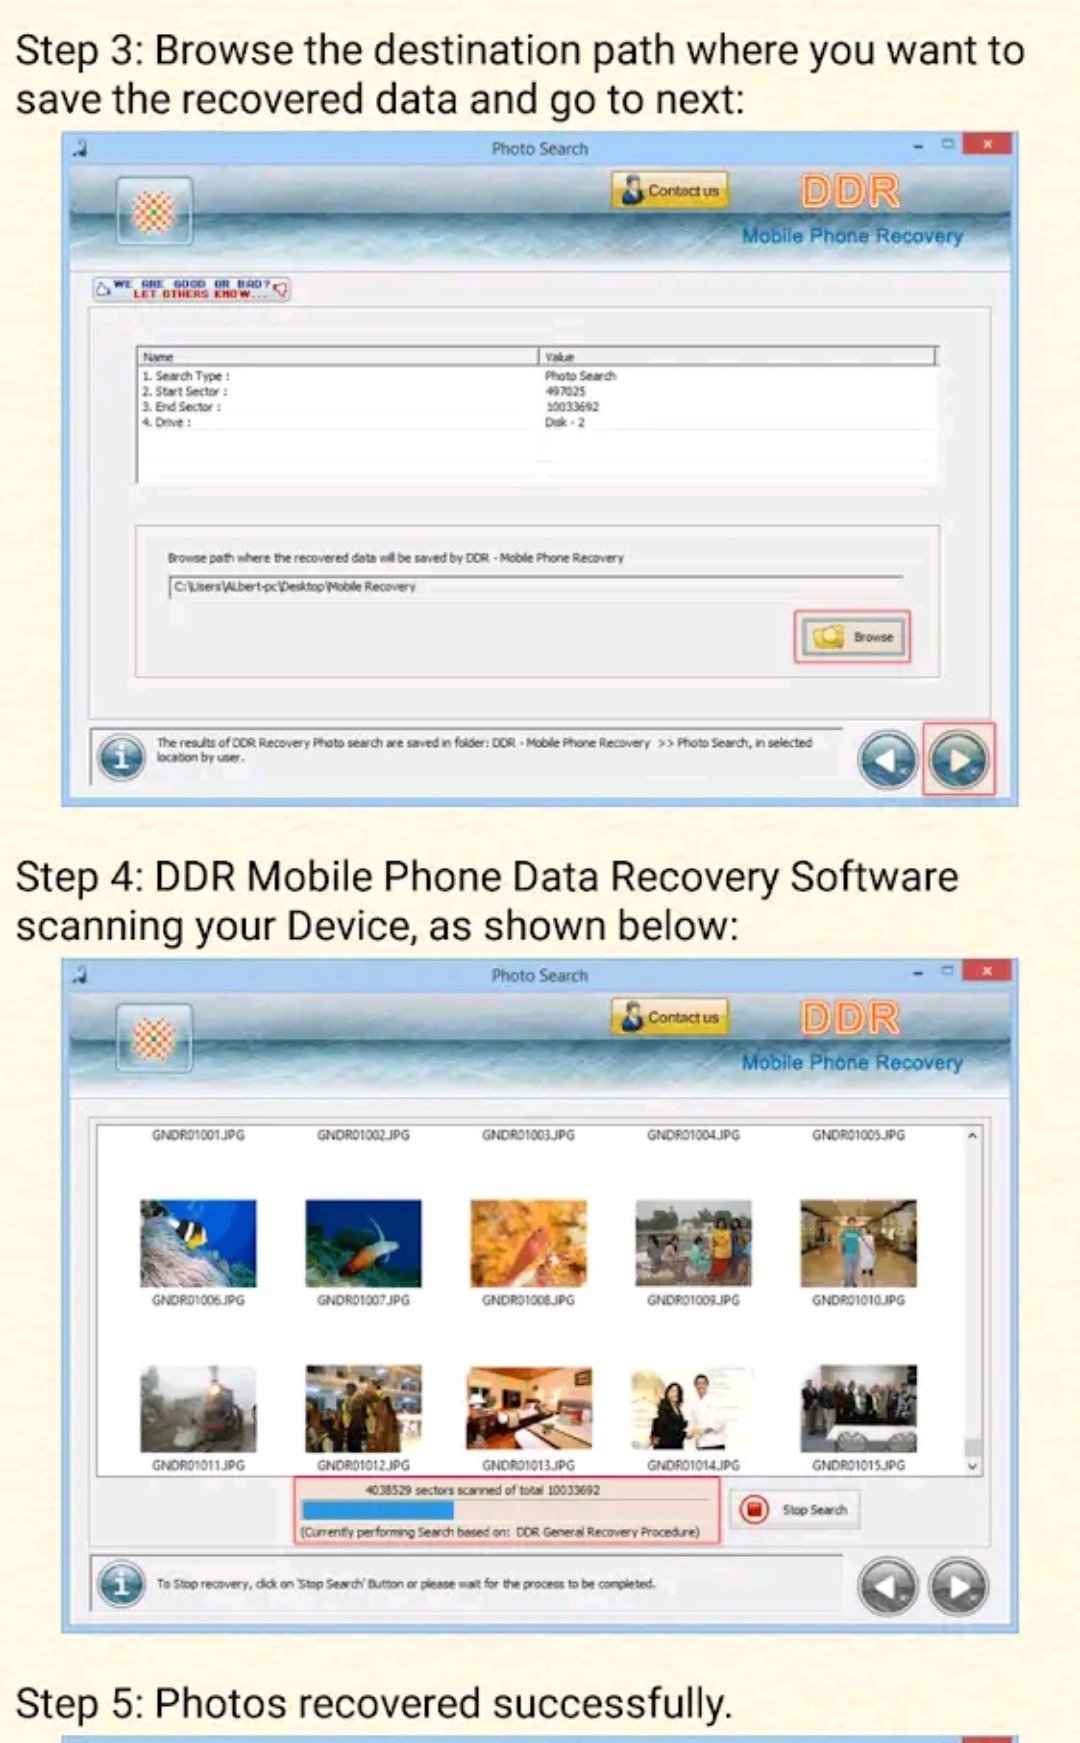 Hard Drive All Data Restore advisor to recover deleted files, folders and all